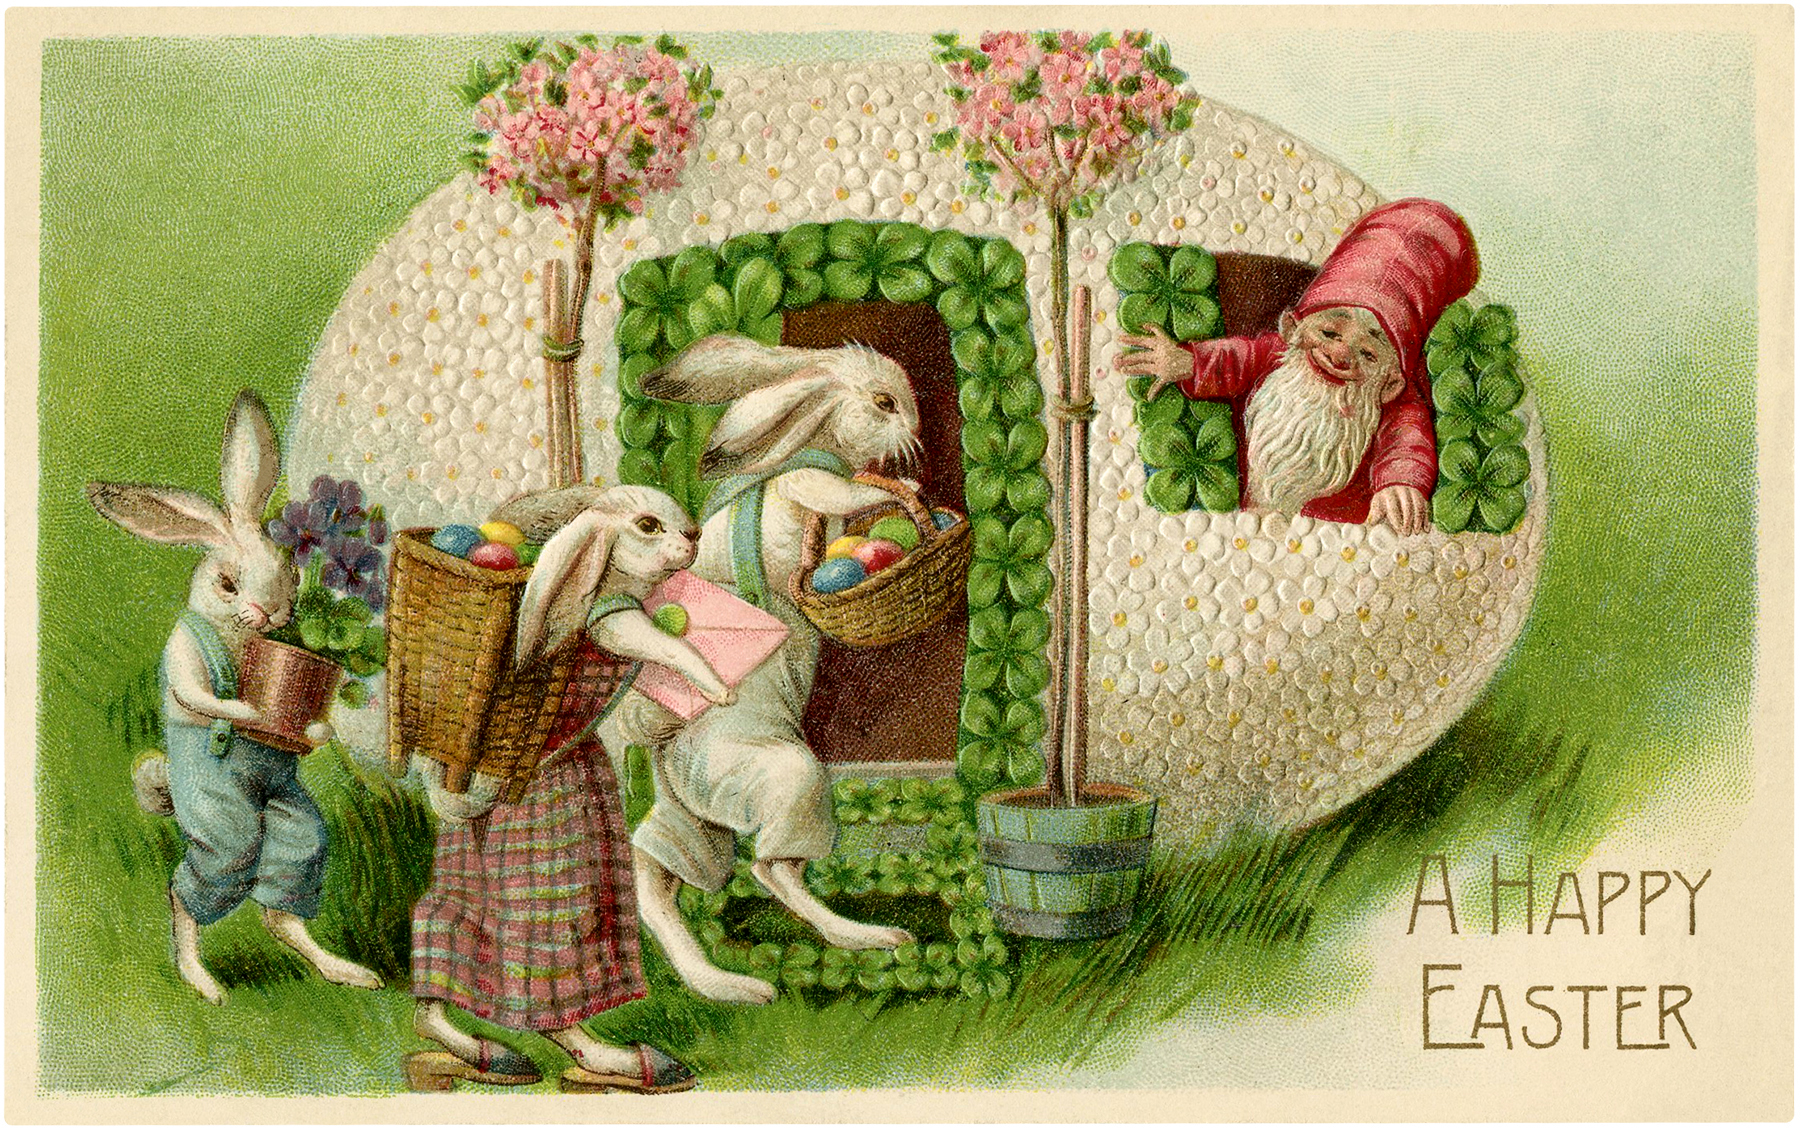 vintage easter bunnies and gnome image the graphics fairy